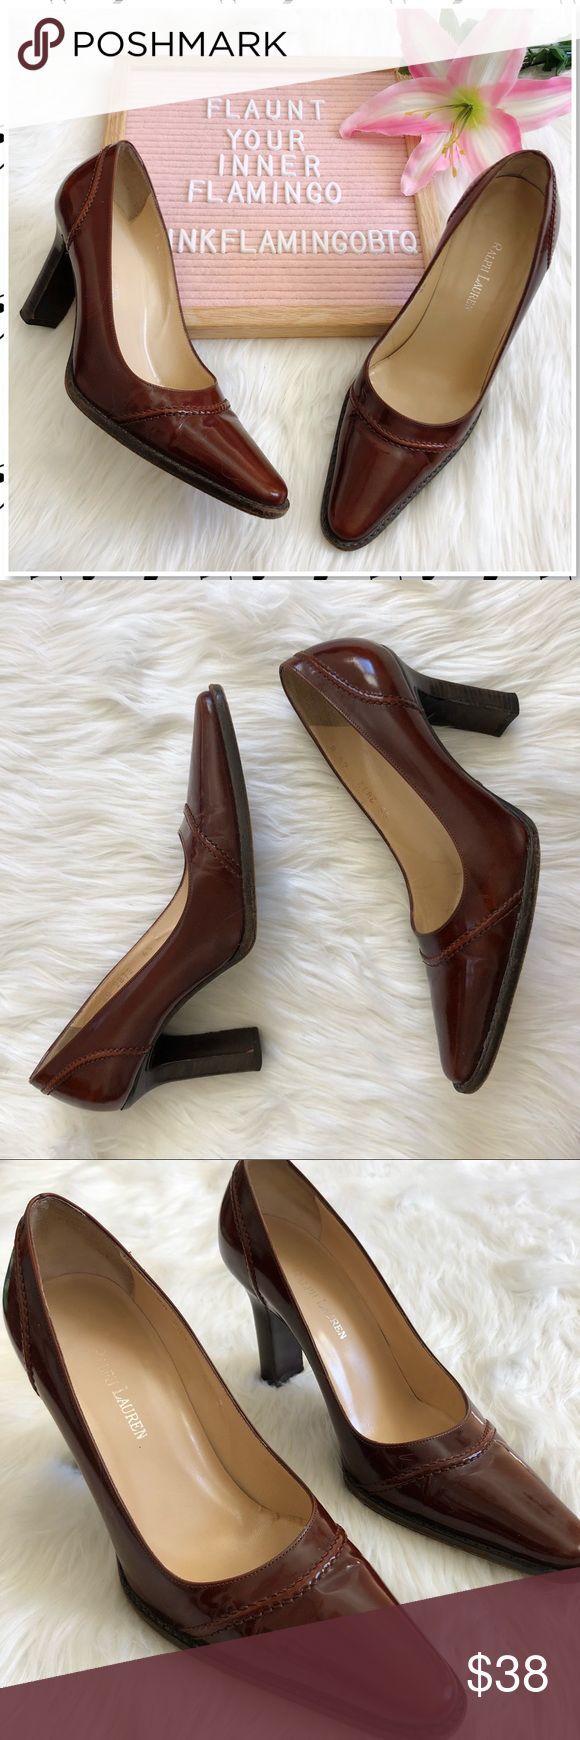 Ralph Lauren Leather Chunky Heel Maroon Pump 6.5 Ralph Lauren Leather Chunky Heel Maroon Pump. A dark brownish maroon leather heel from Ralph Lauren. Pointed toe, chunky heel and braided leather stitch design across the vamp and heel. Gorgeous! Gently used condition. Only notable flaw is slight mark on inside back heel. Photos are best descriptors. Ralph Lauren Shoes Heels